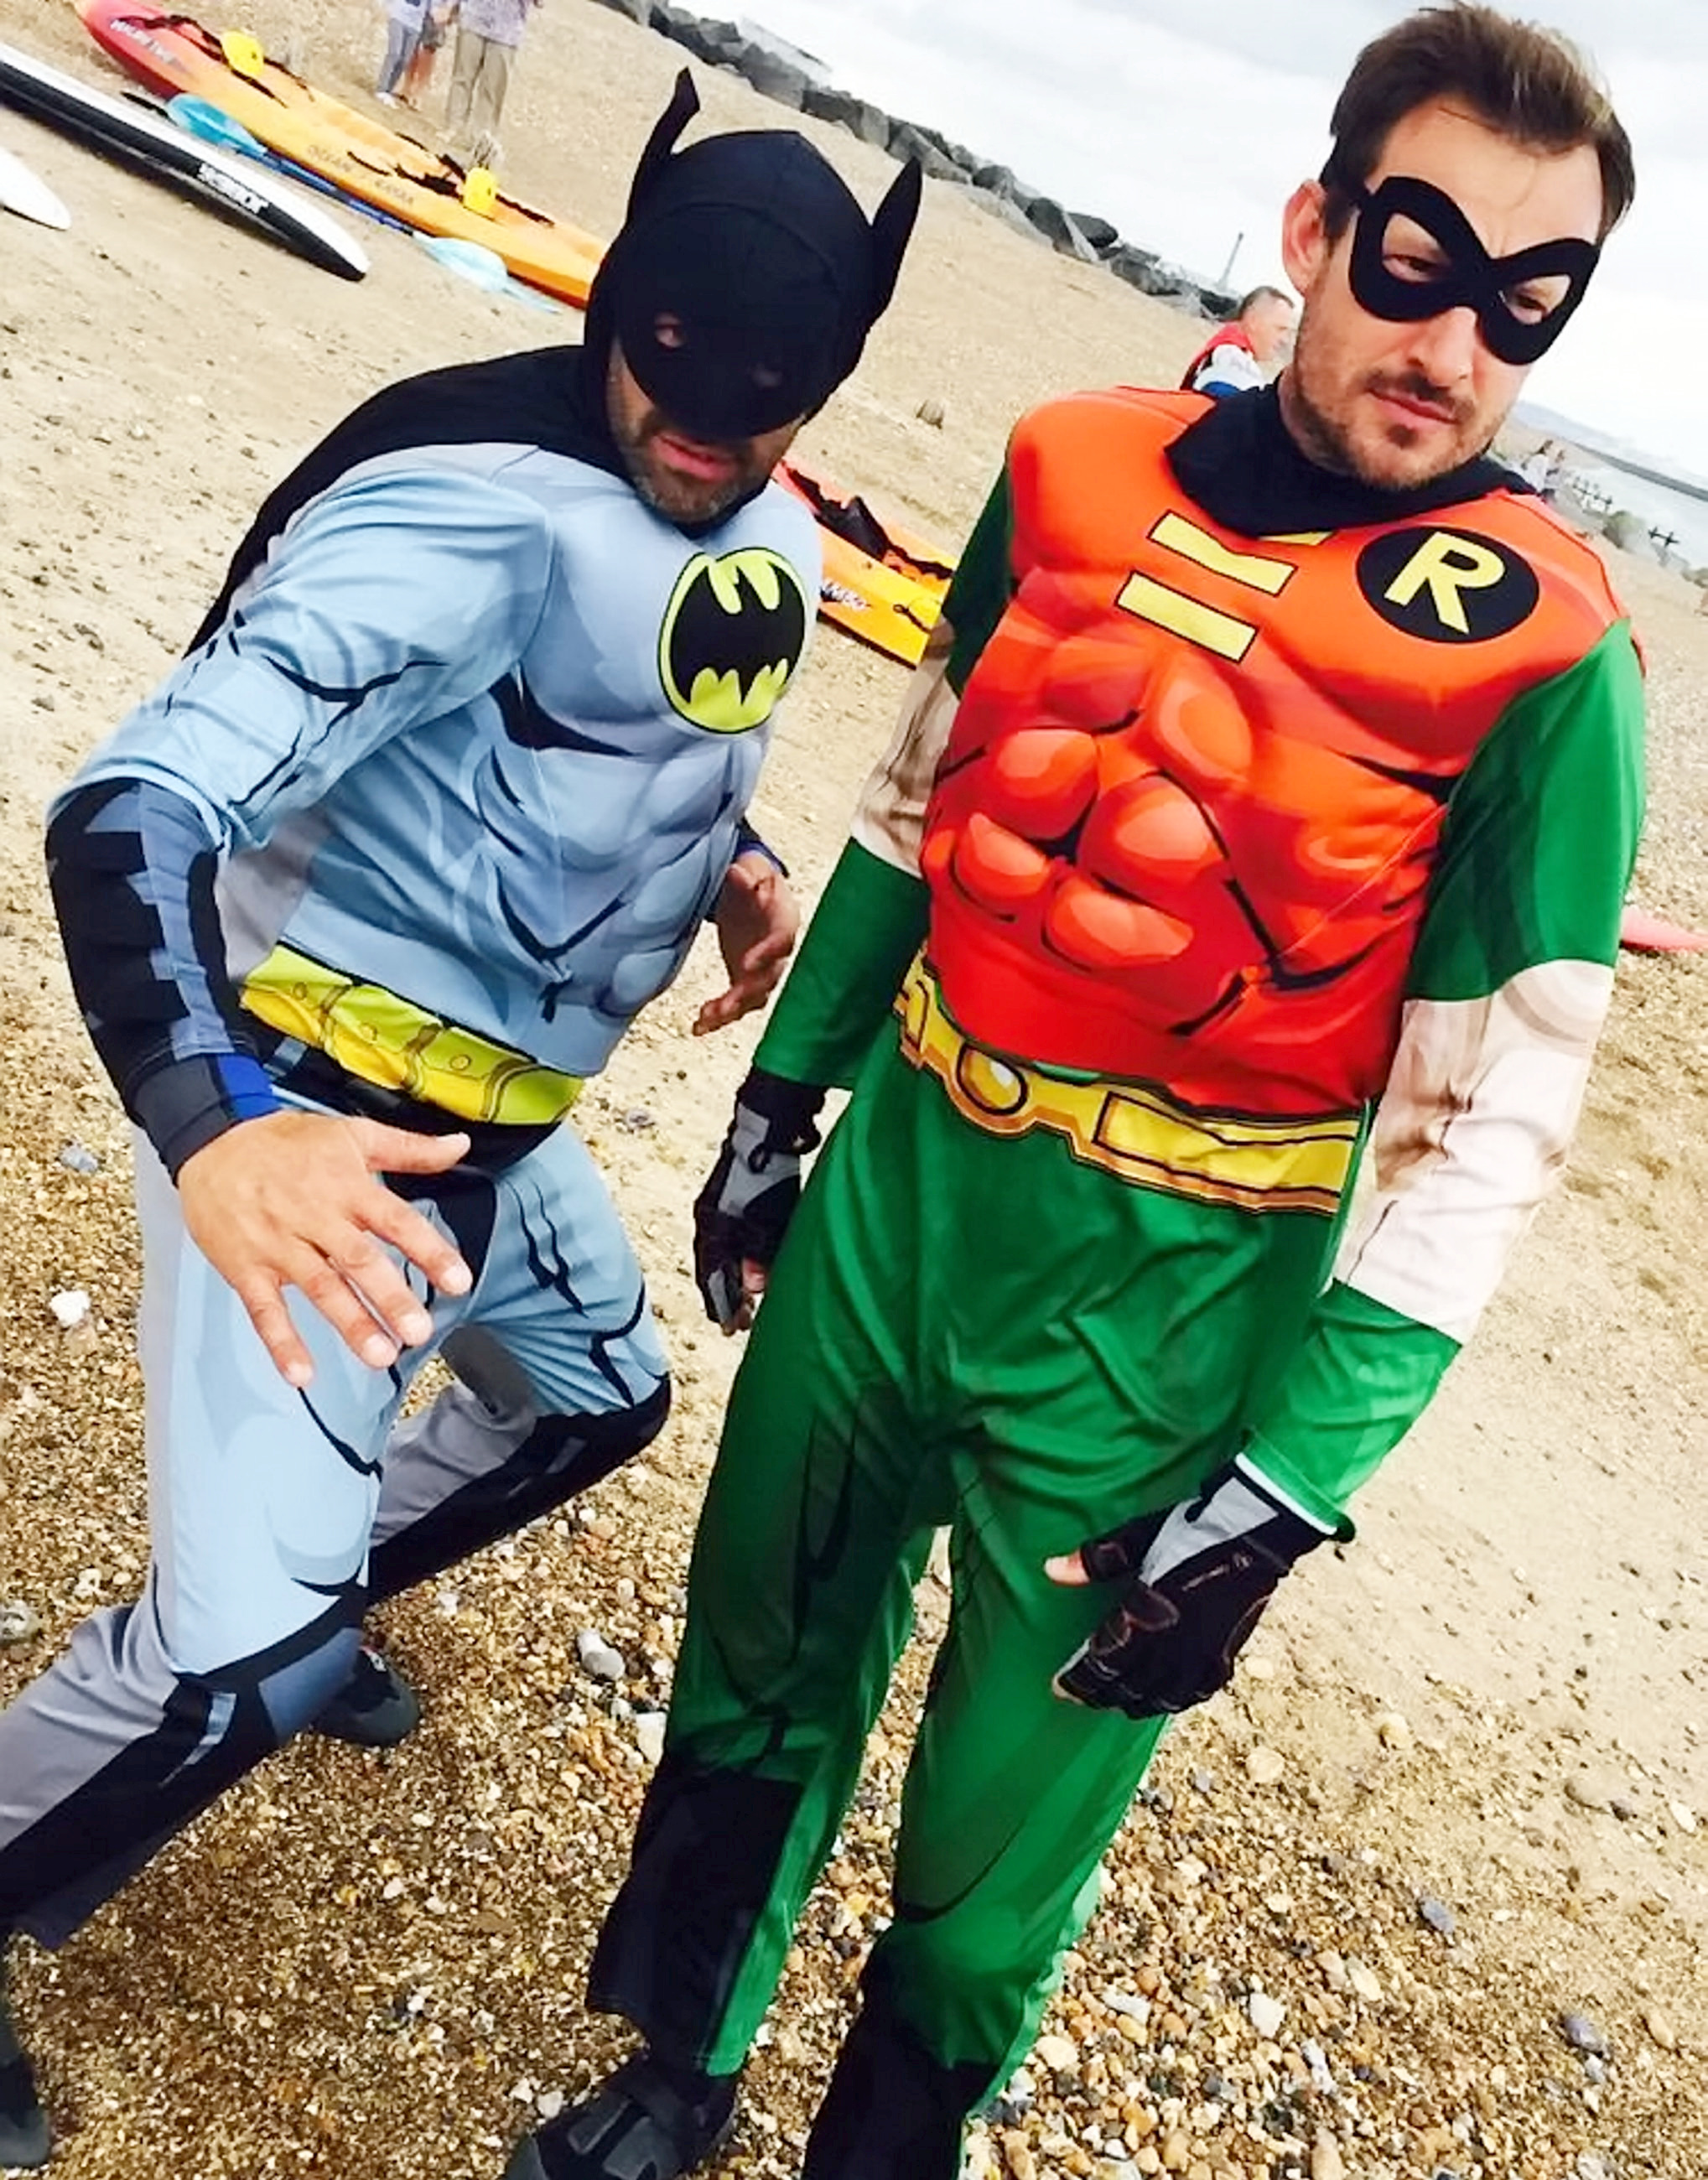 Batman and Robin save a drowning kitesurfer